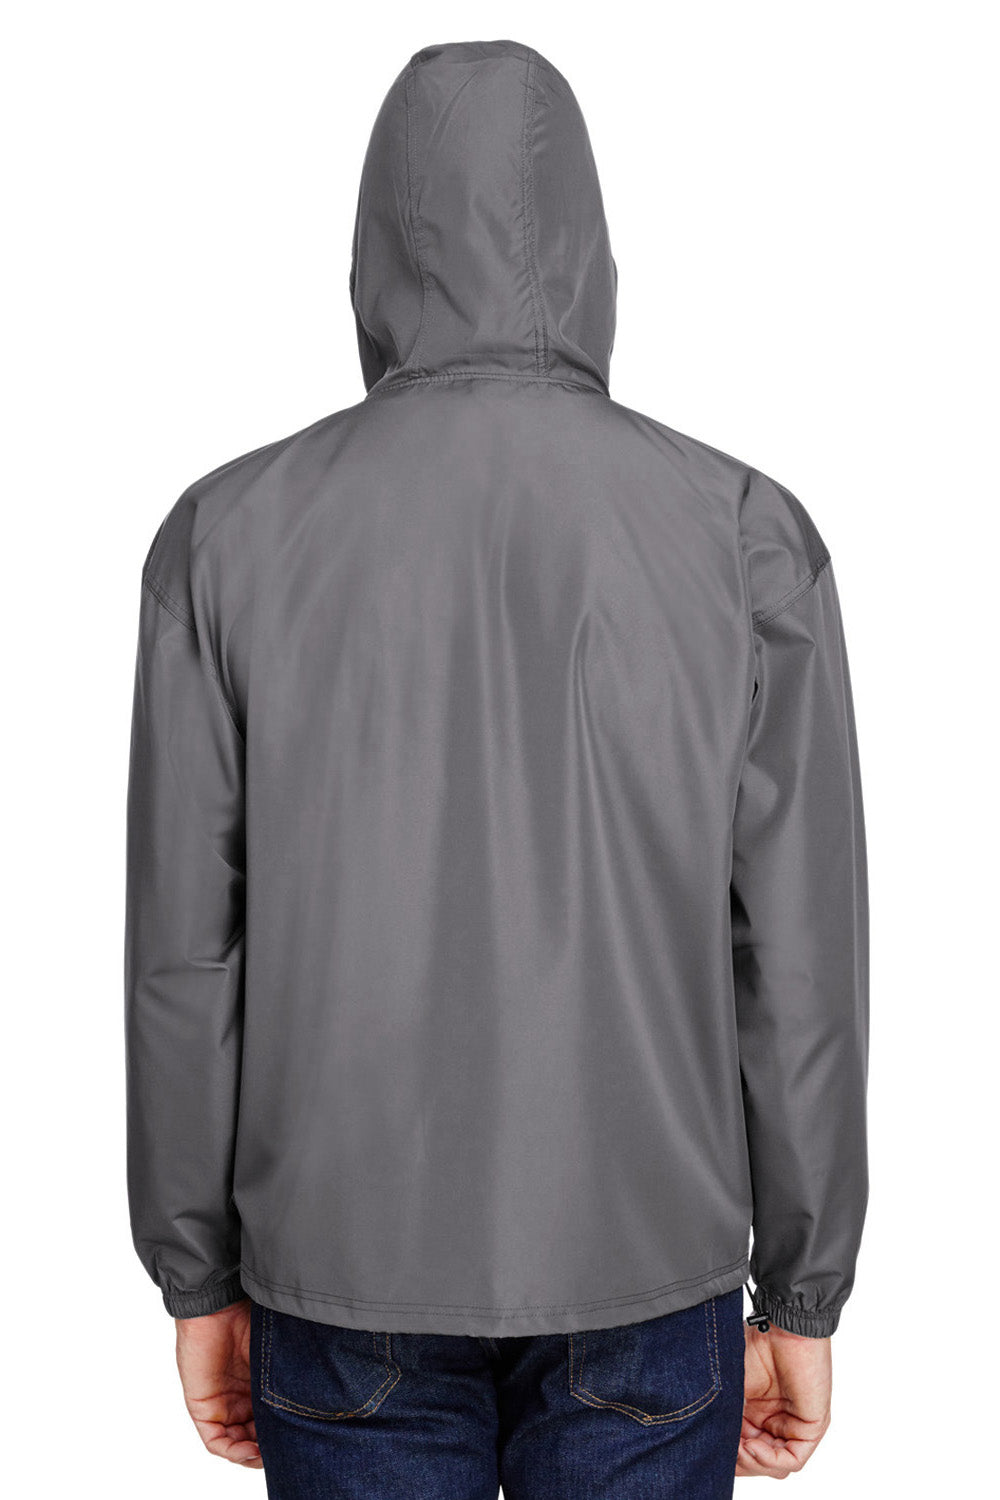 Champion CO200 Mens Packable Anorak 1/4 Zip Hooded Jacket Graphite Grey Back